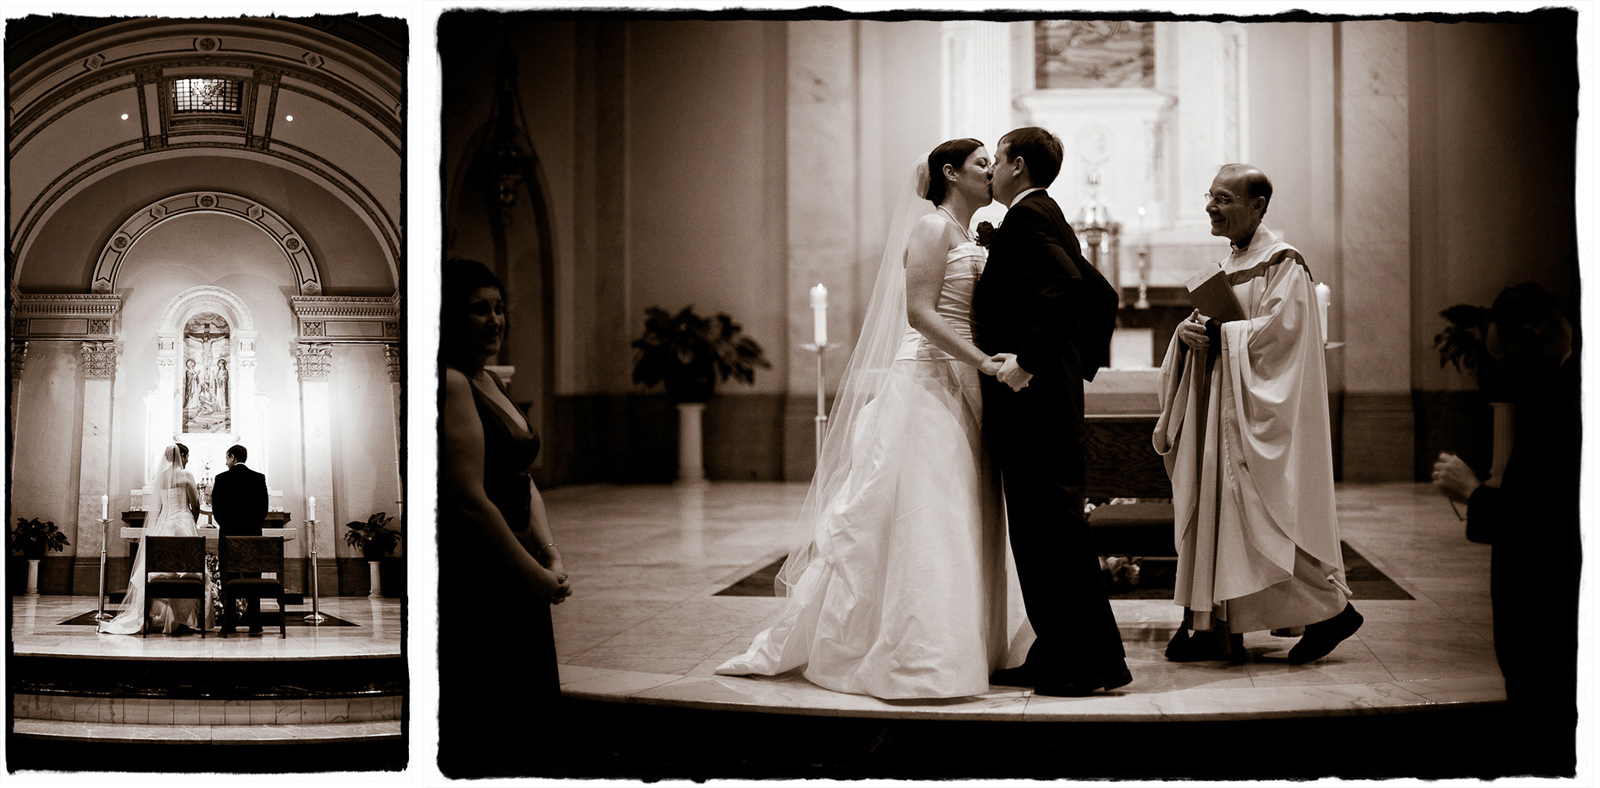 Elizabeth and Brendan share their first kiss as husband and wife in this lovely church ceremony.